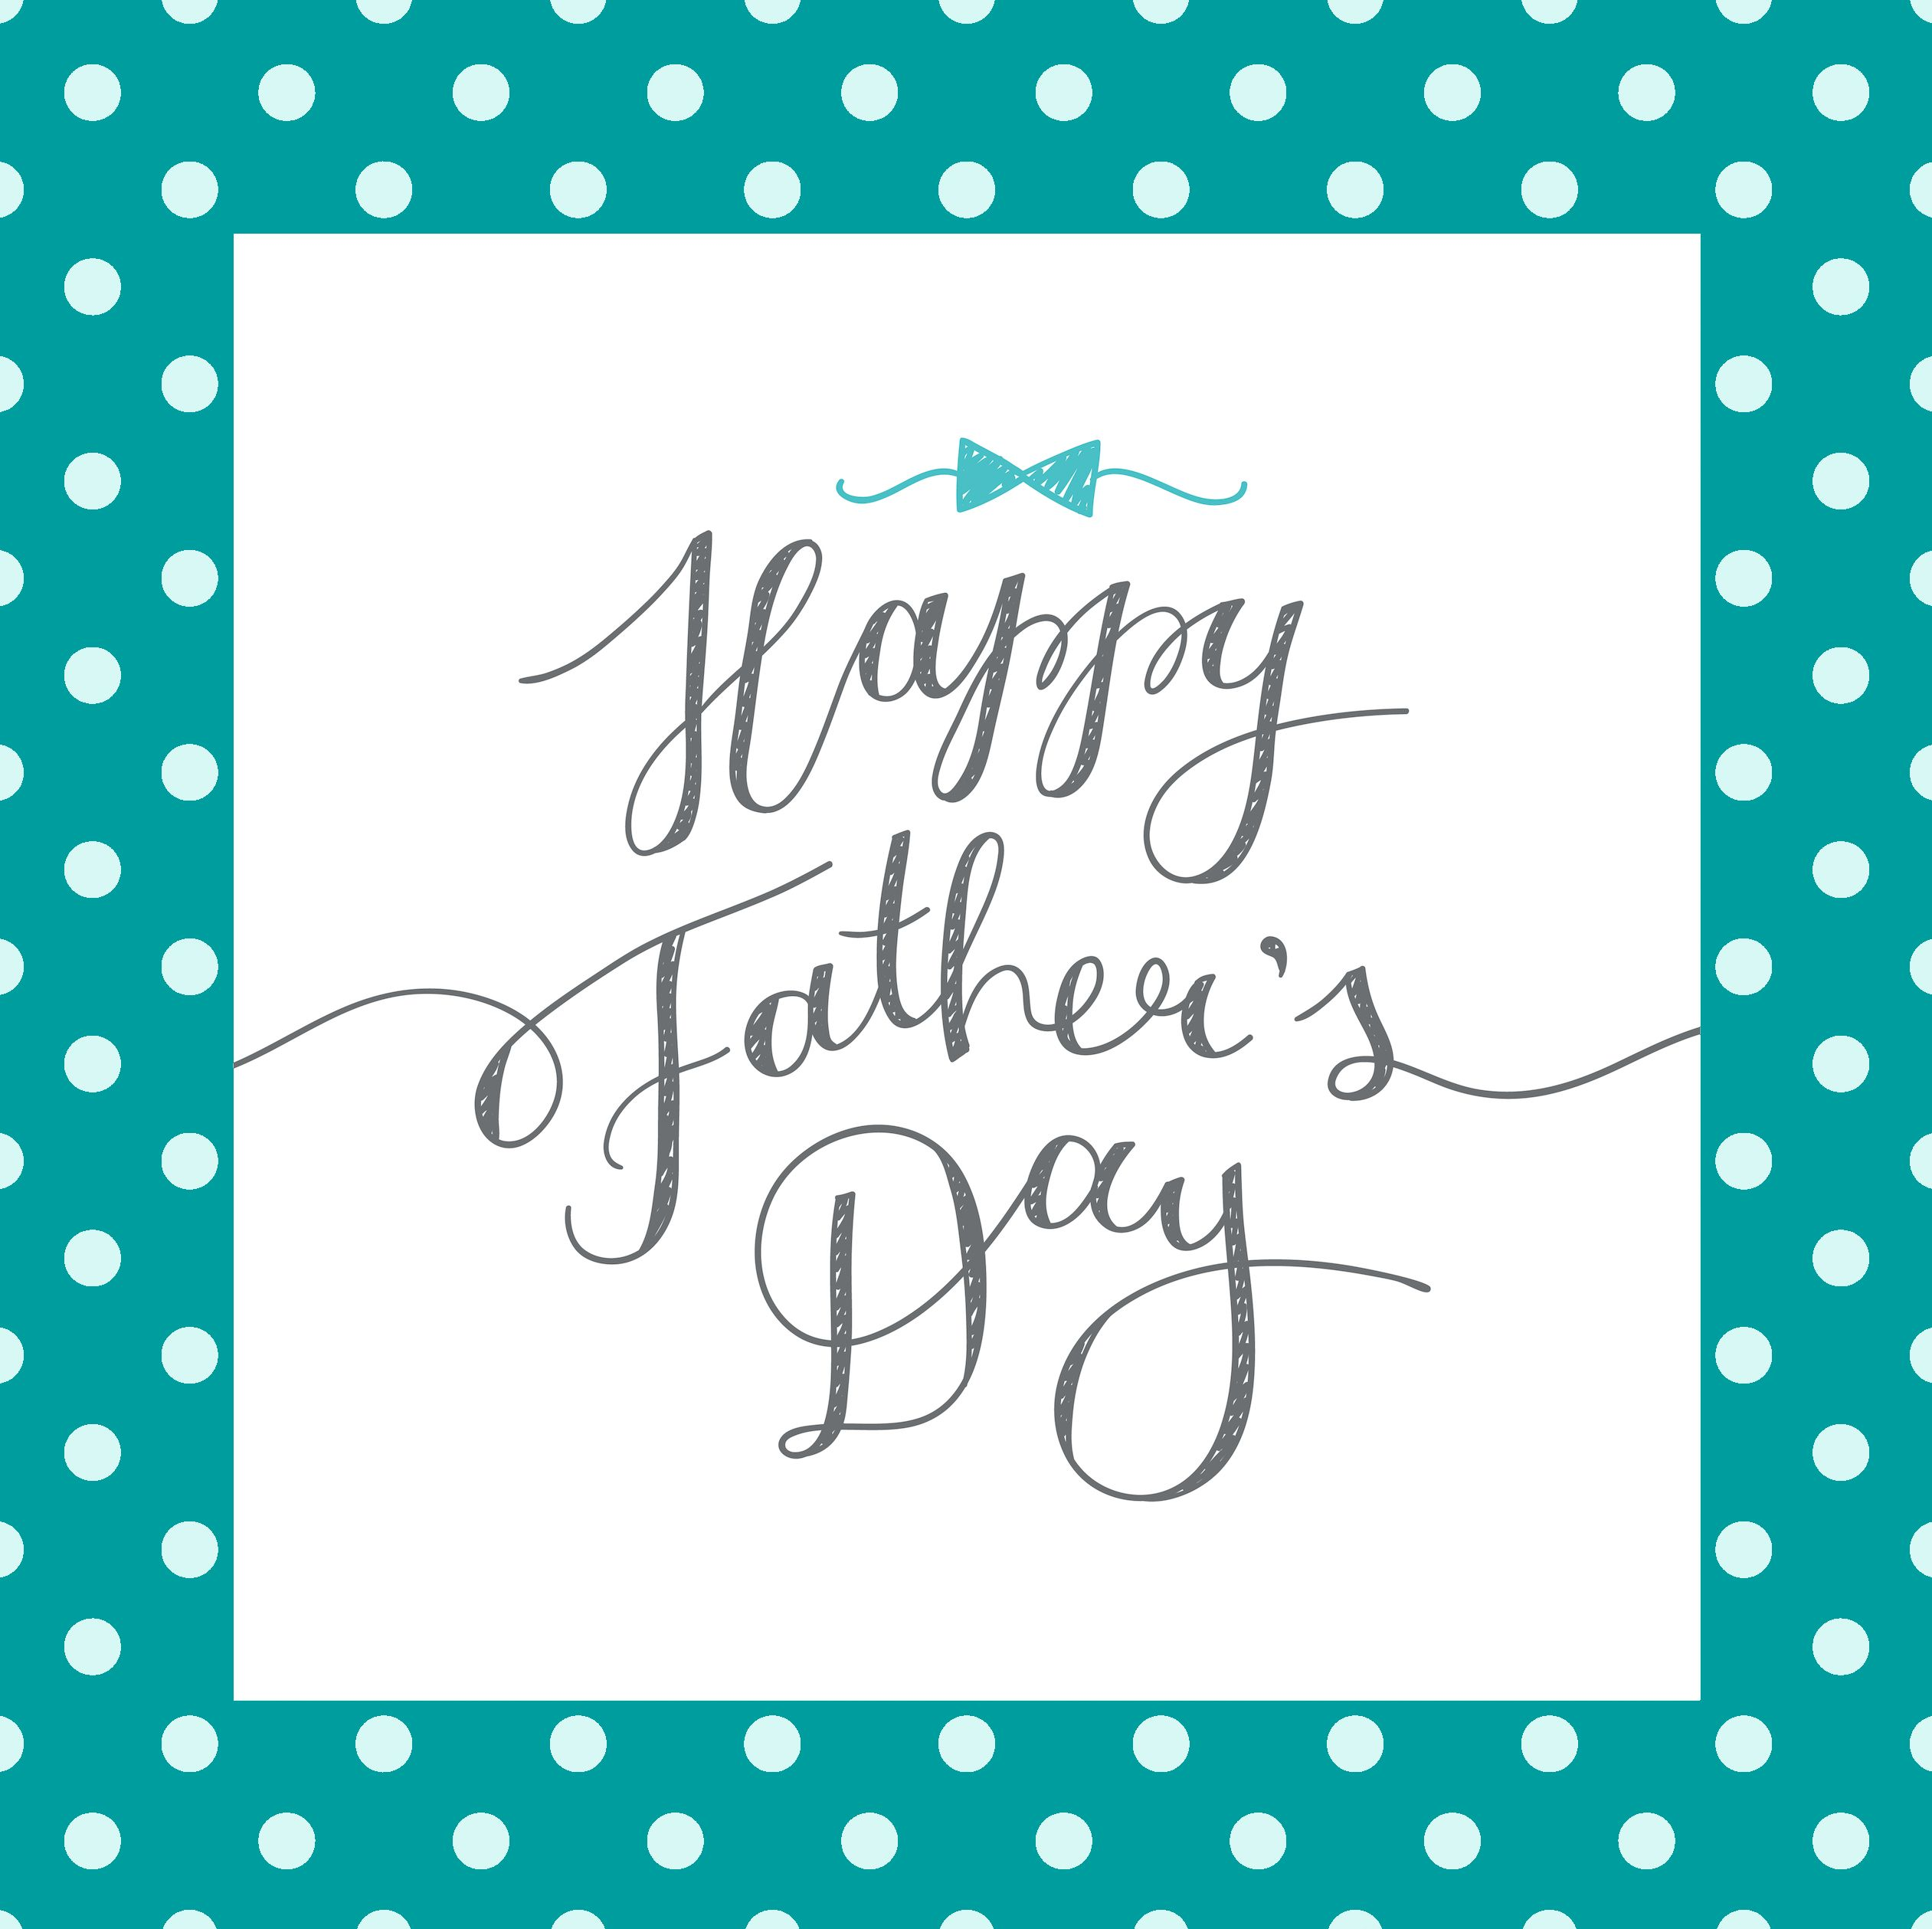 Wishing all of our NannyPay fathers a Happy Father's Day!